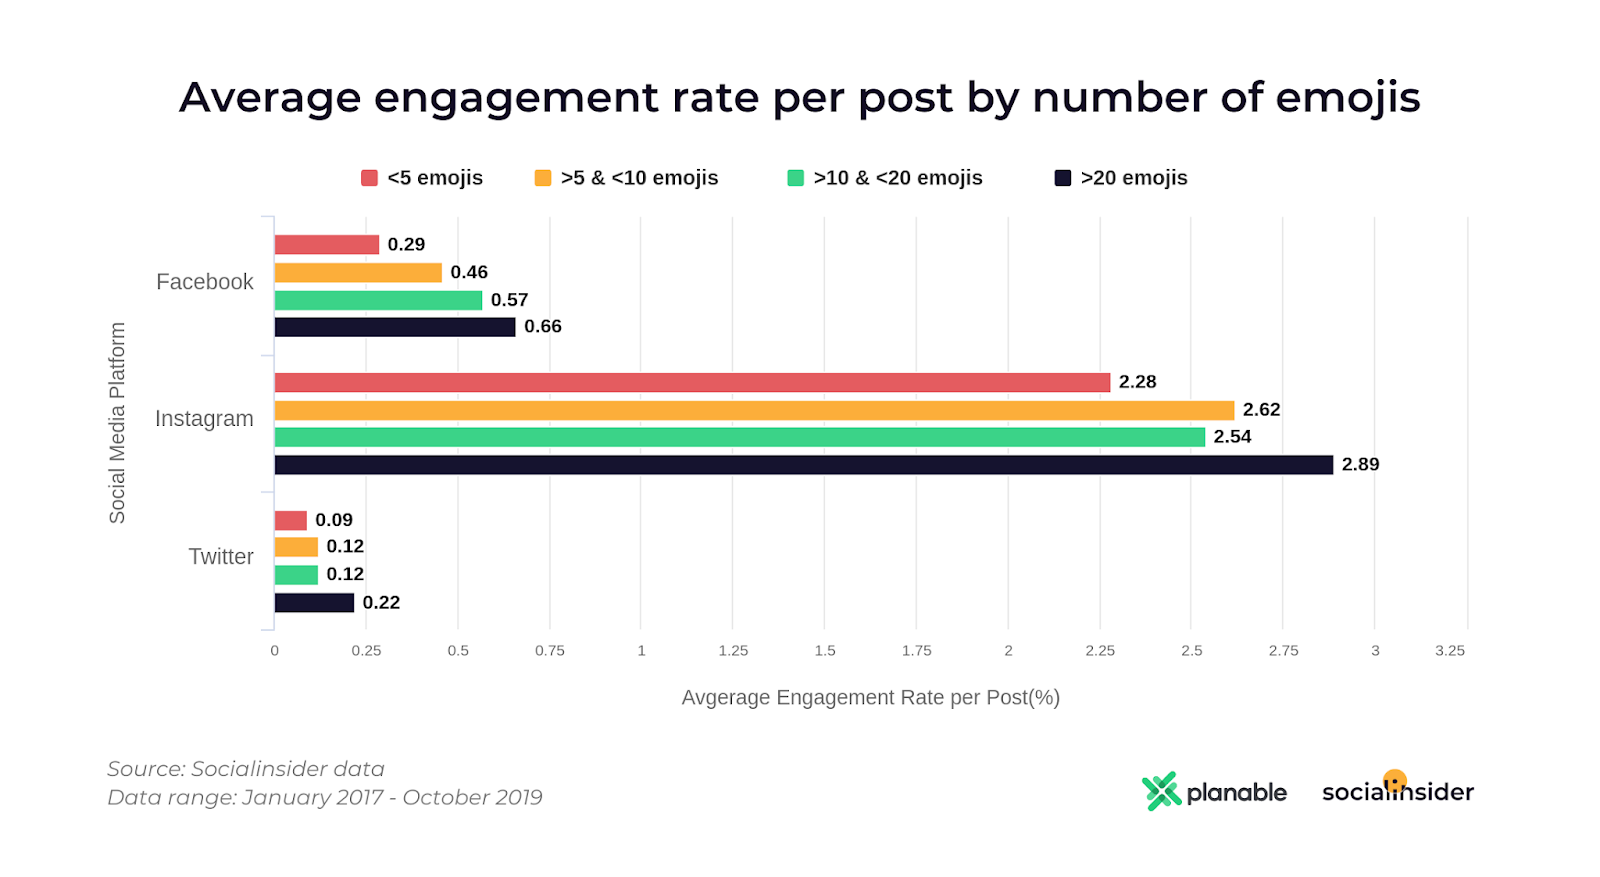 average engagement rate per post by number of emojis